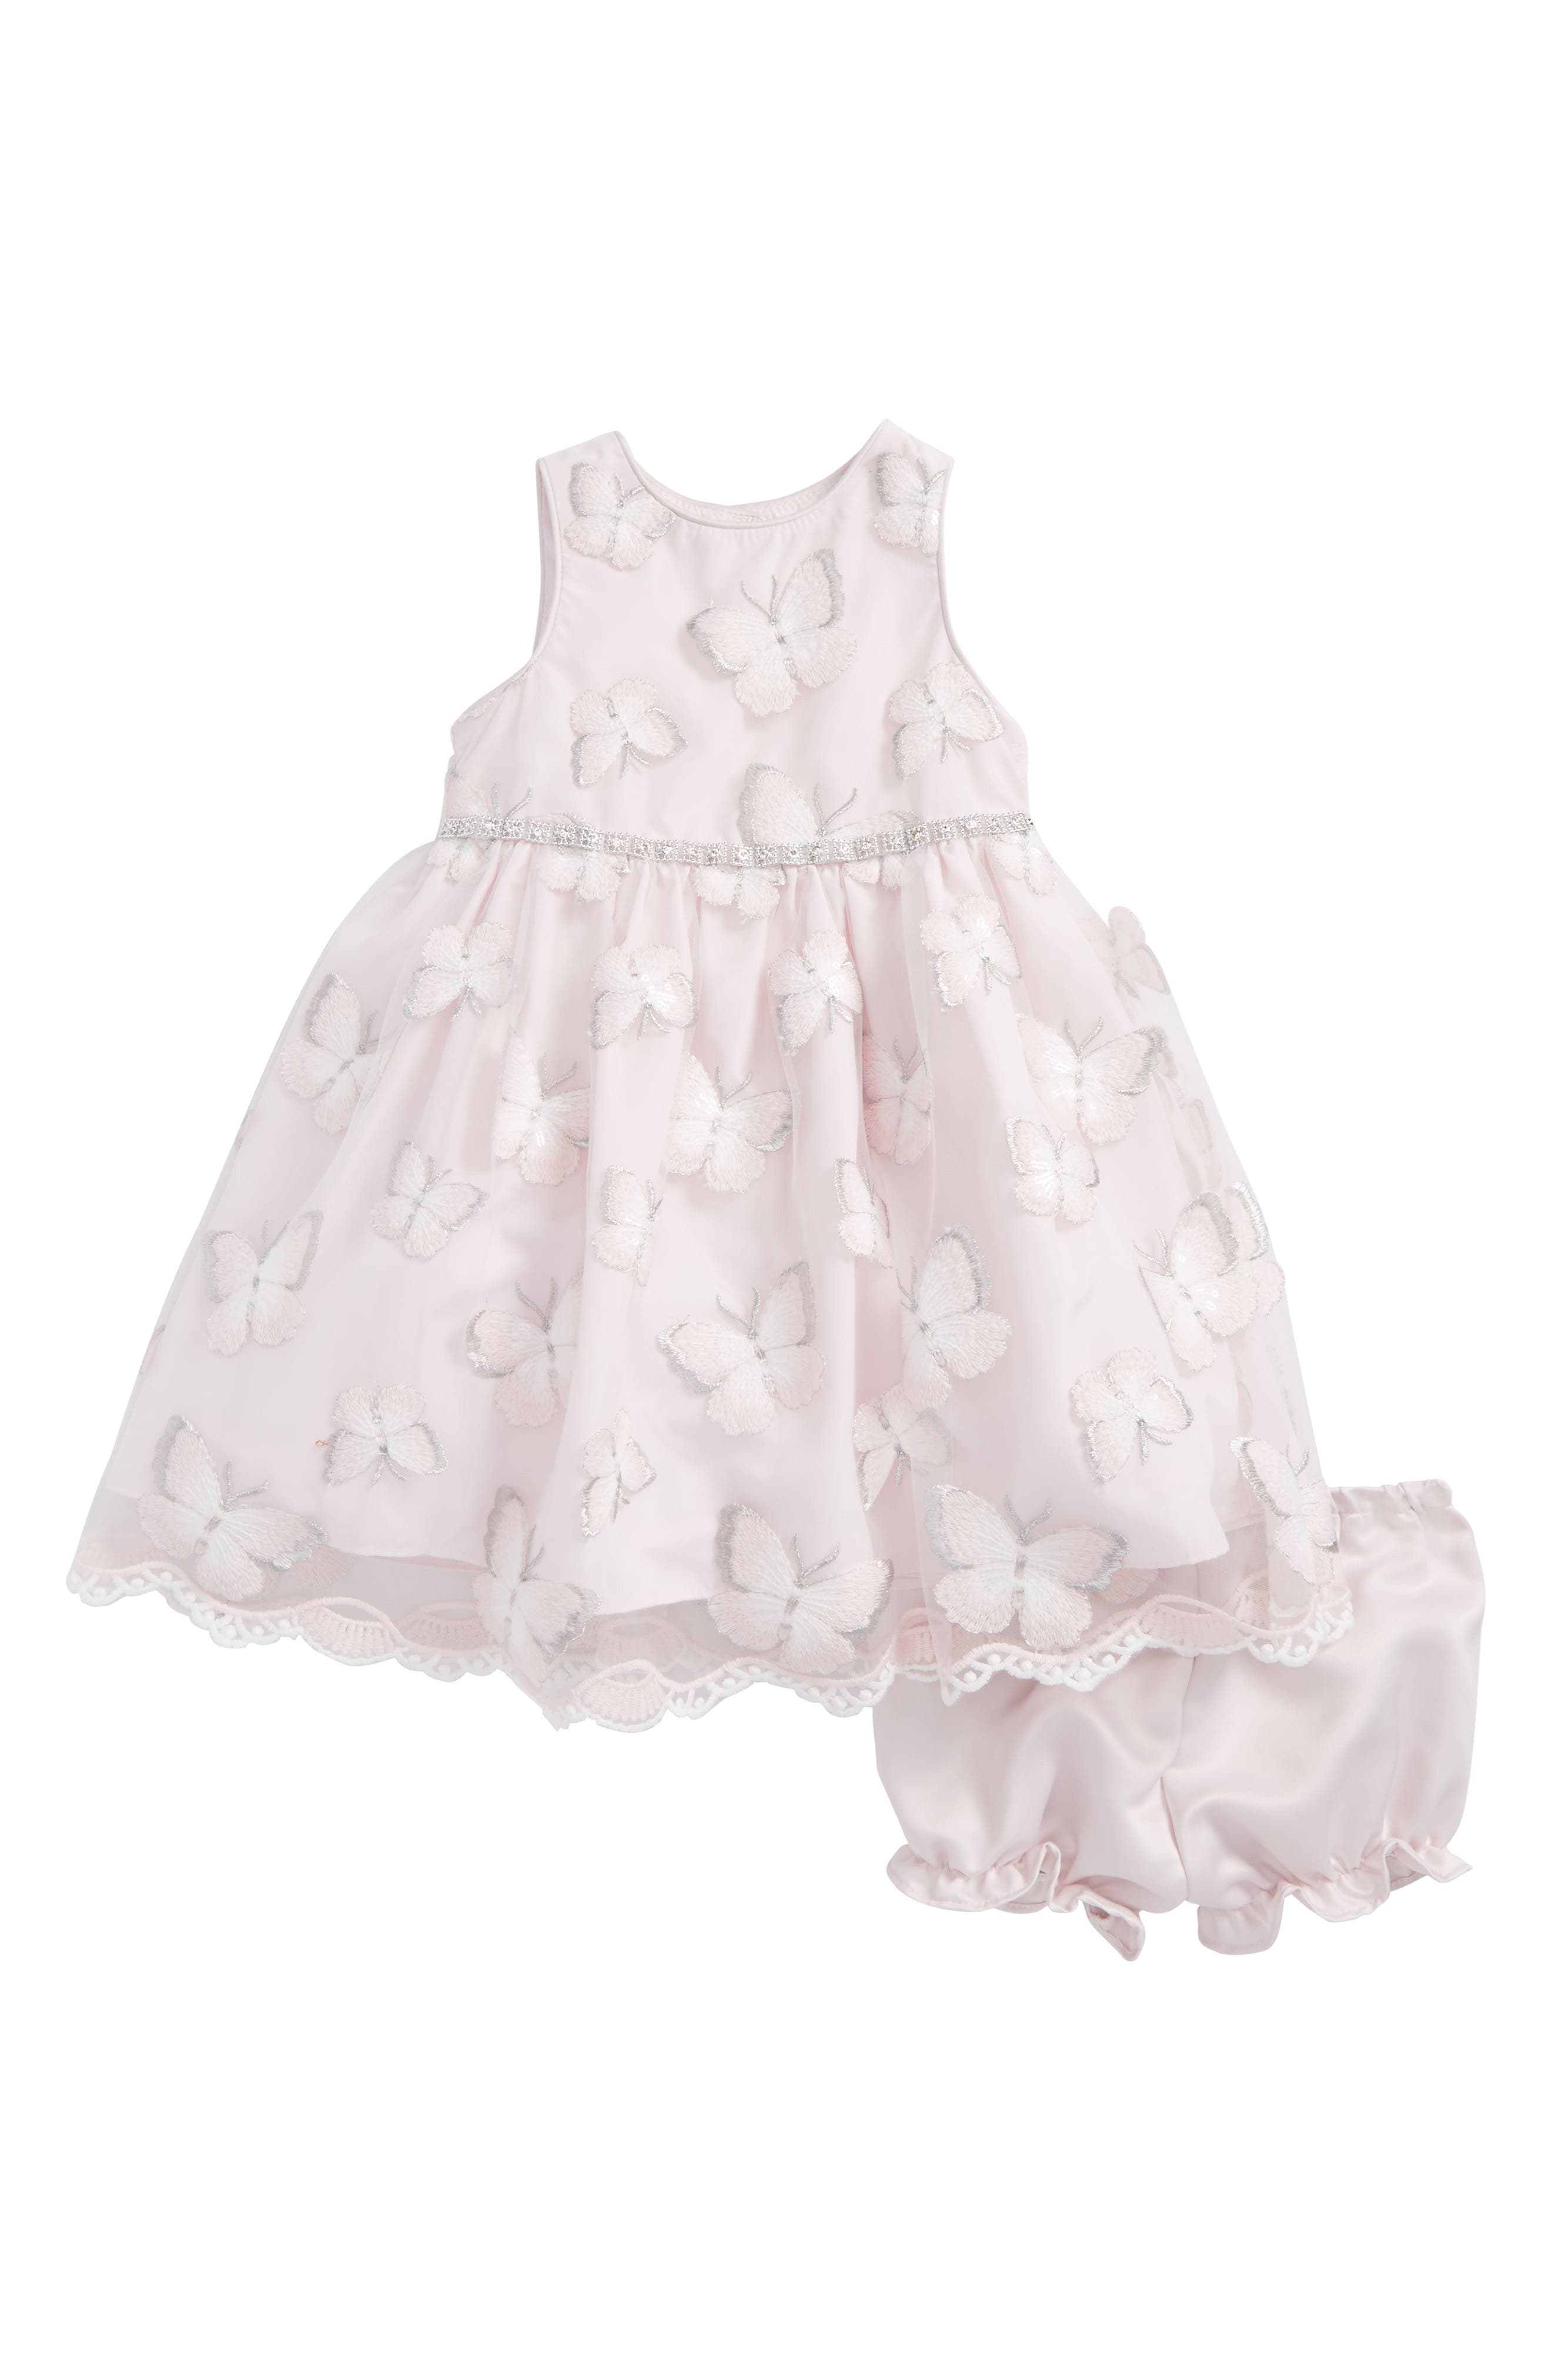 Main Image - Pippa & Julie Embroidered Butterfly Dress (Baby Girls)